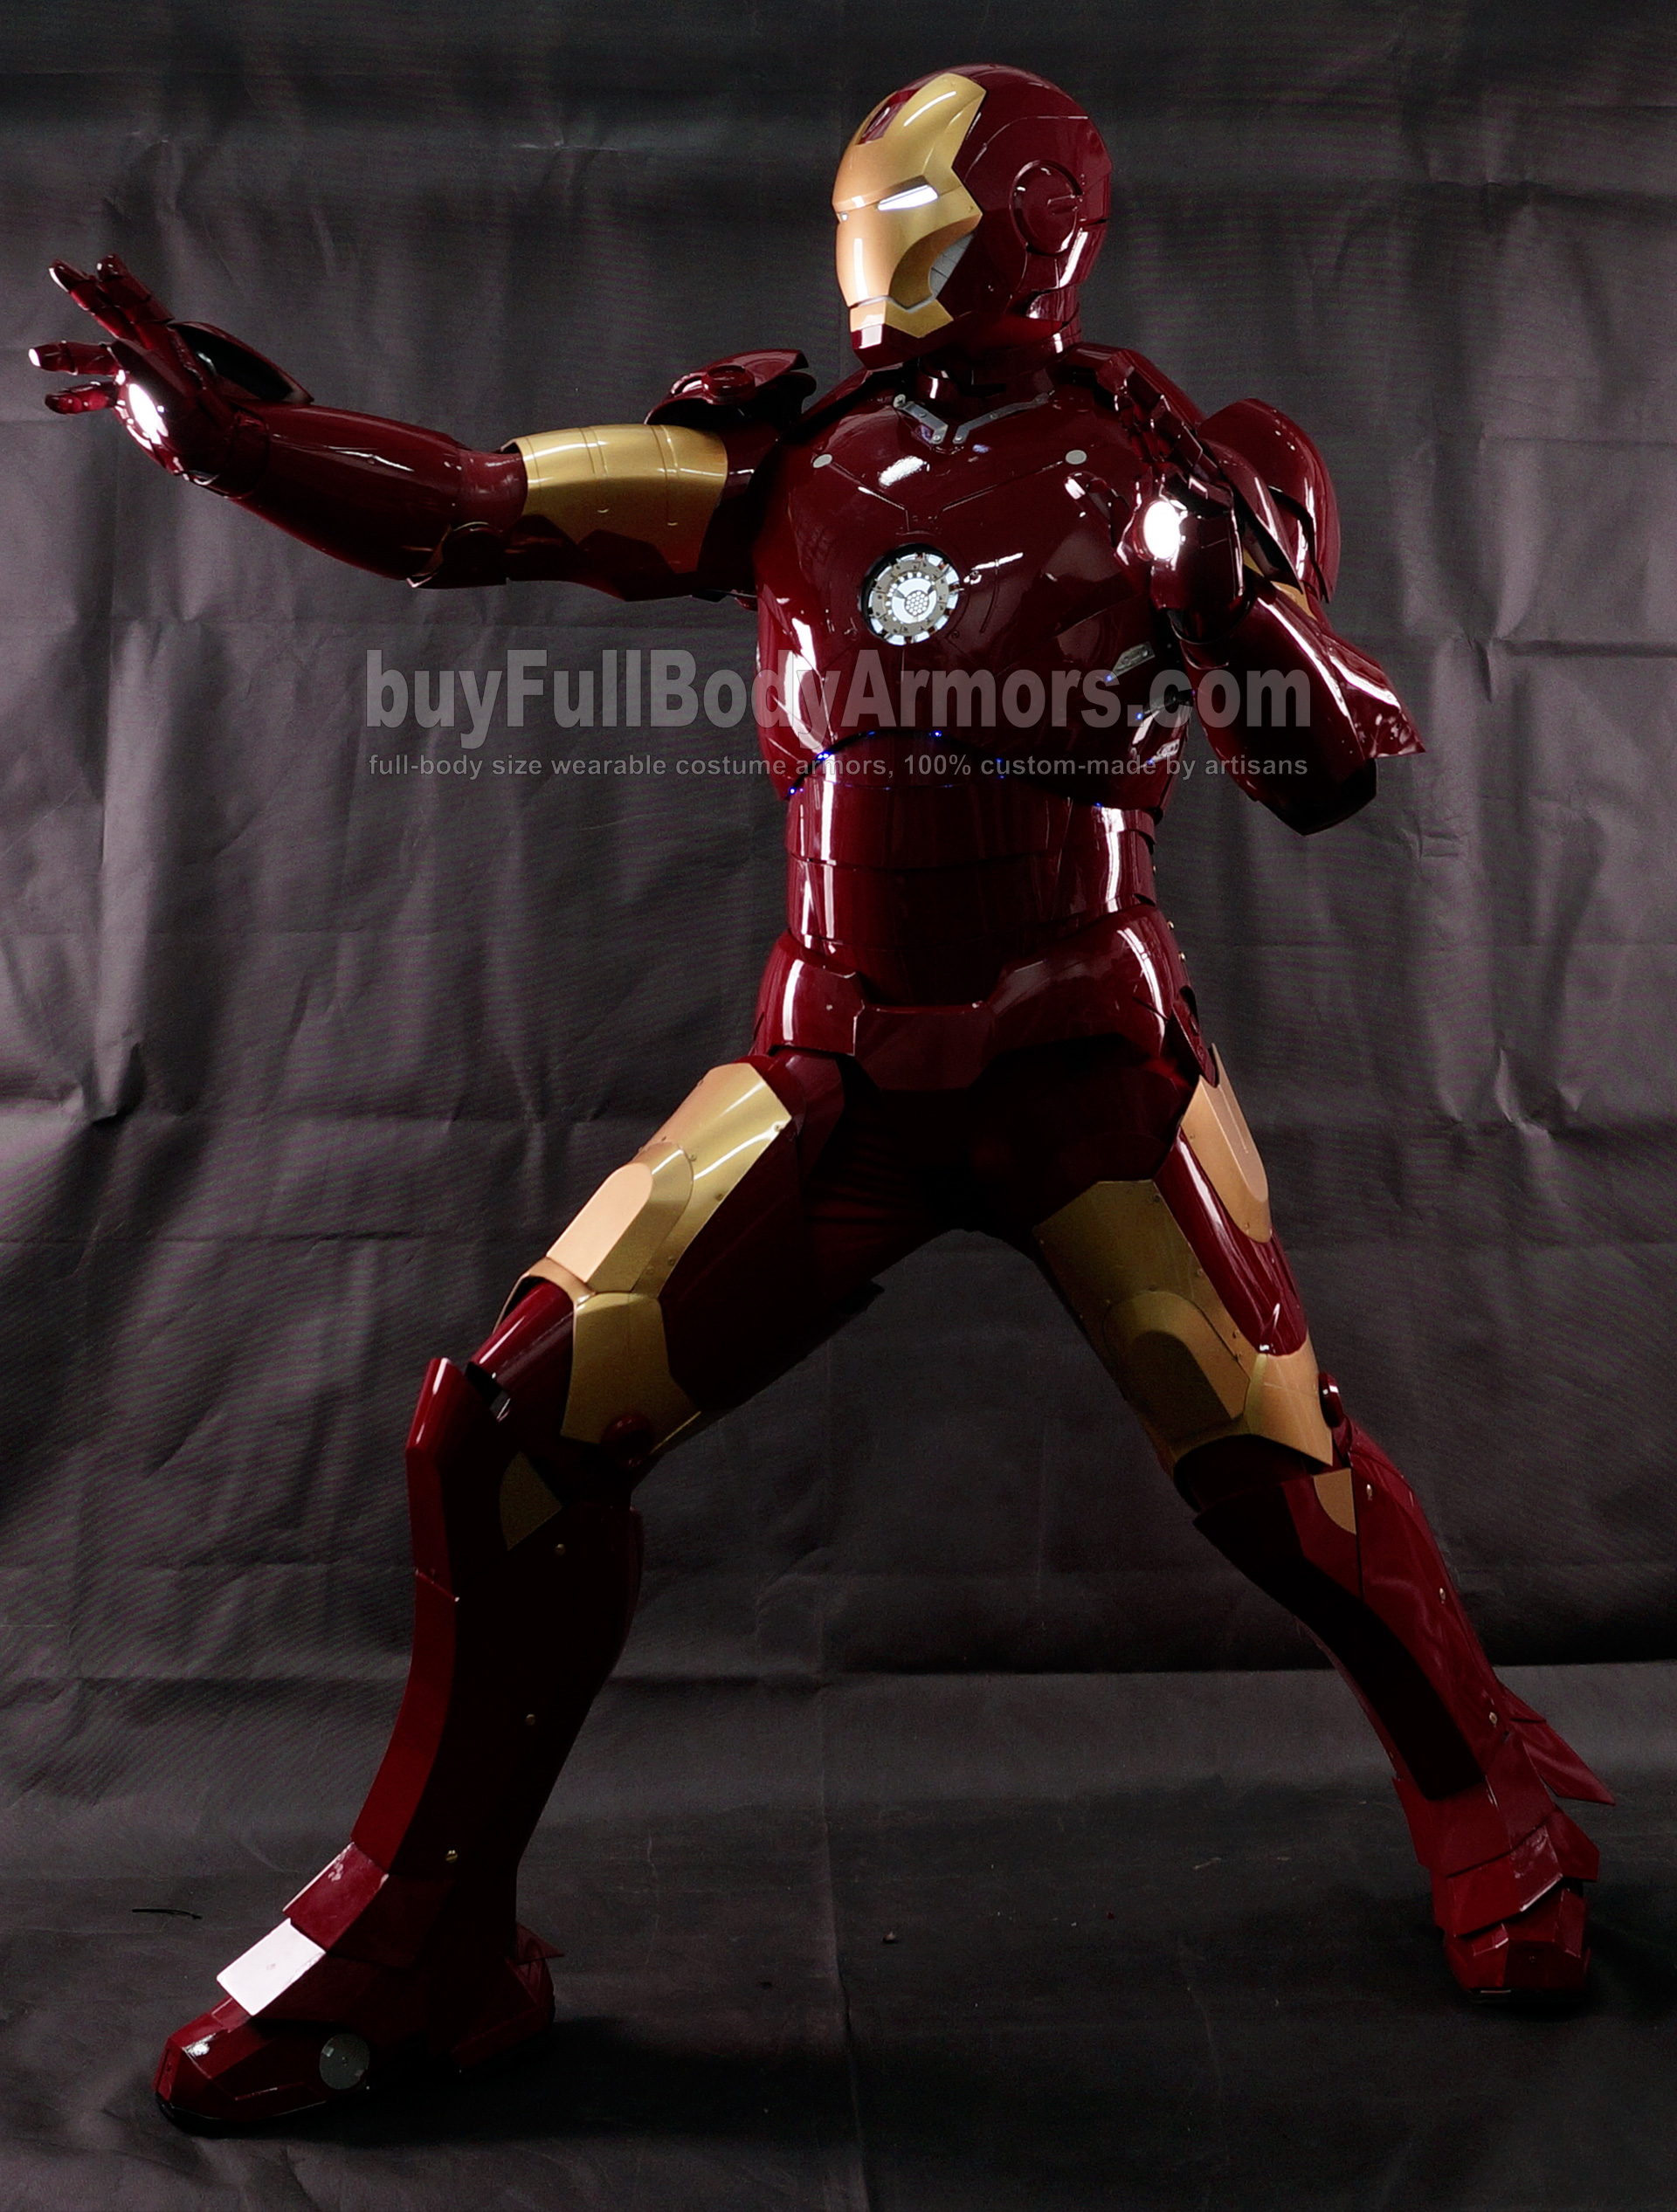 High Definition Photos of the Wearable Iron Man Mark 3 III Armor Costume Suit 4